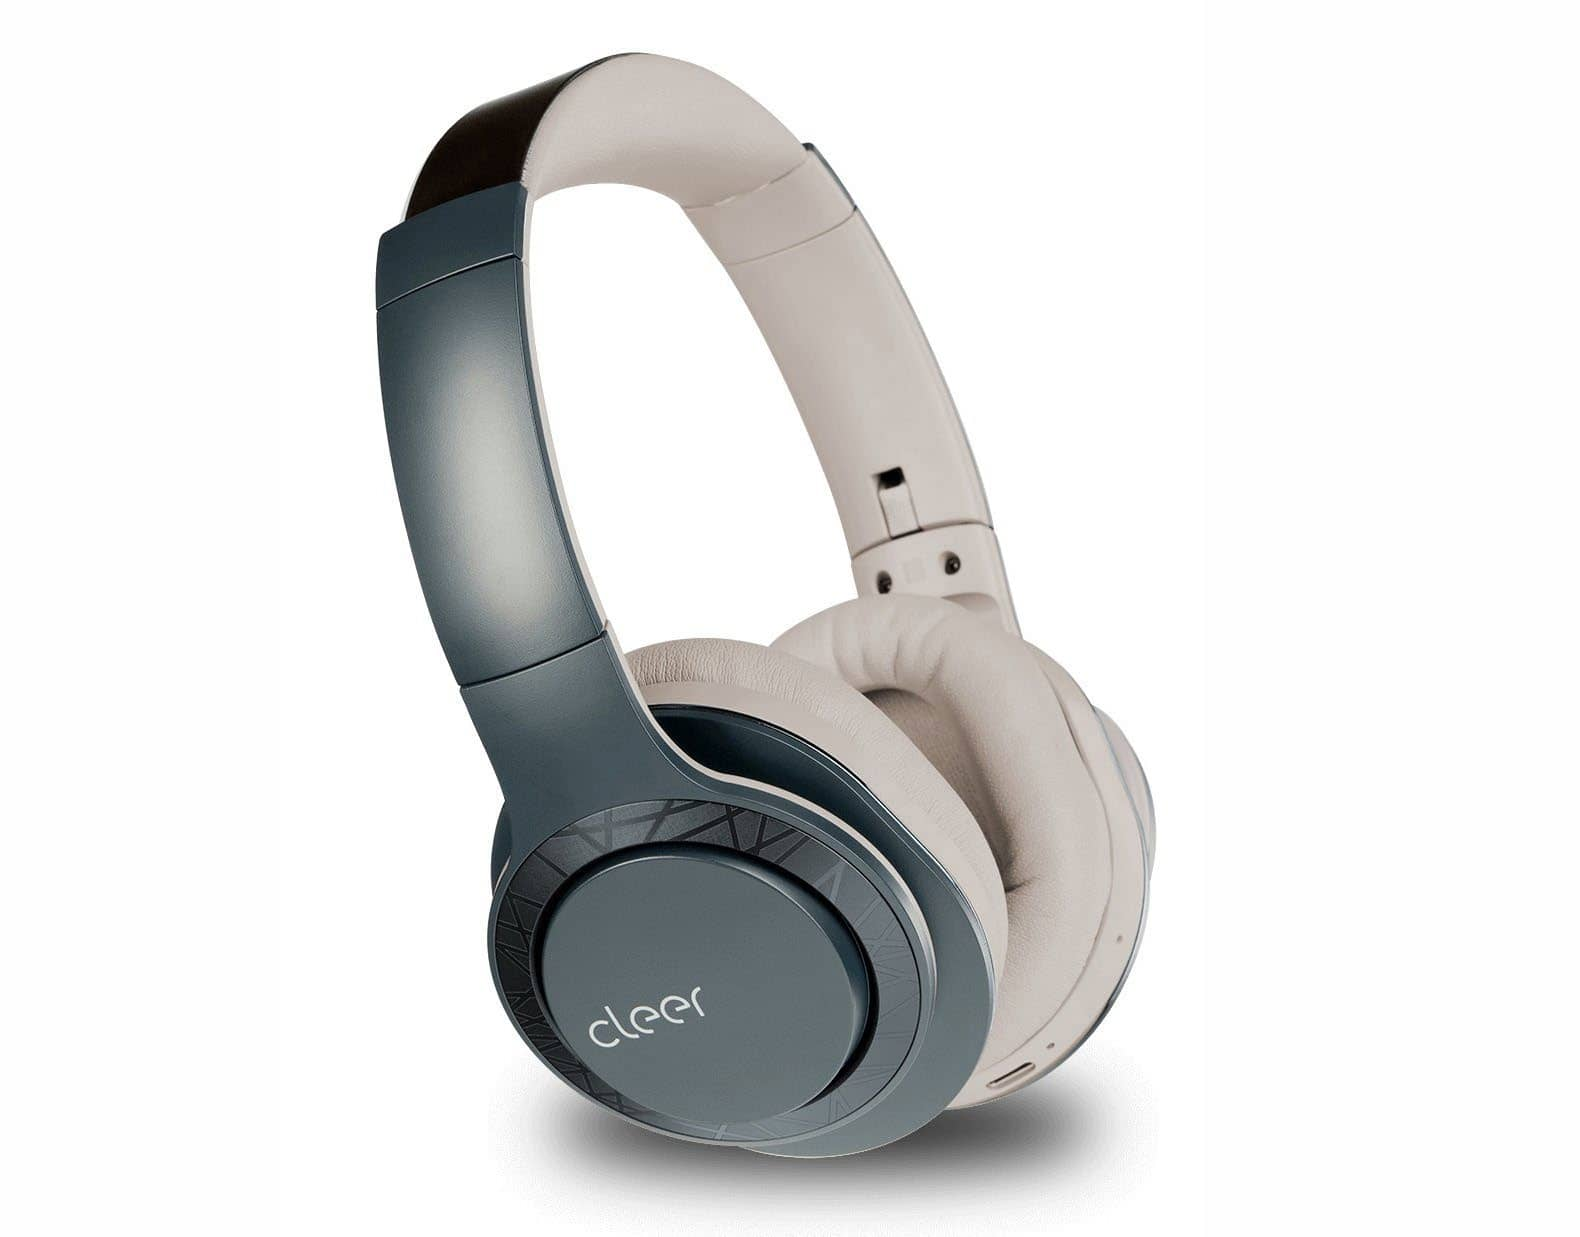 Cleer Enduro 100 headphones: Great sound, fantastic battery life, and all the right features